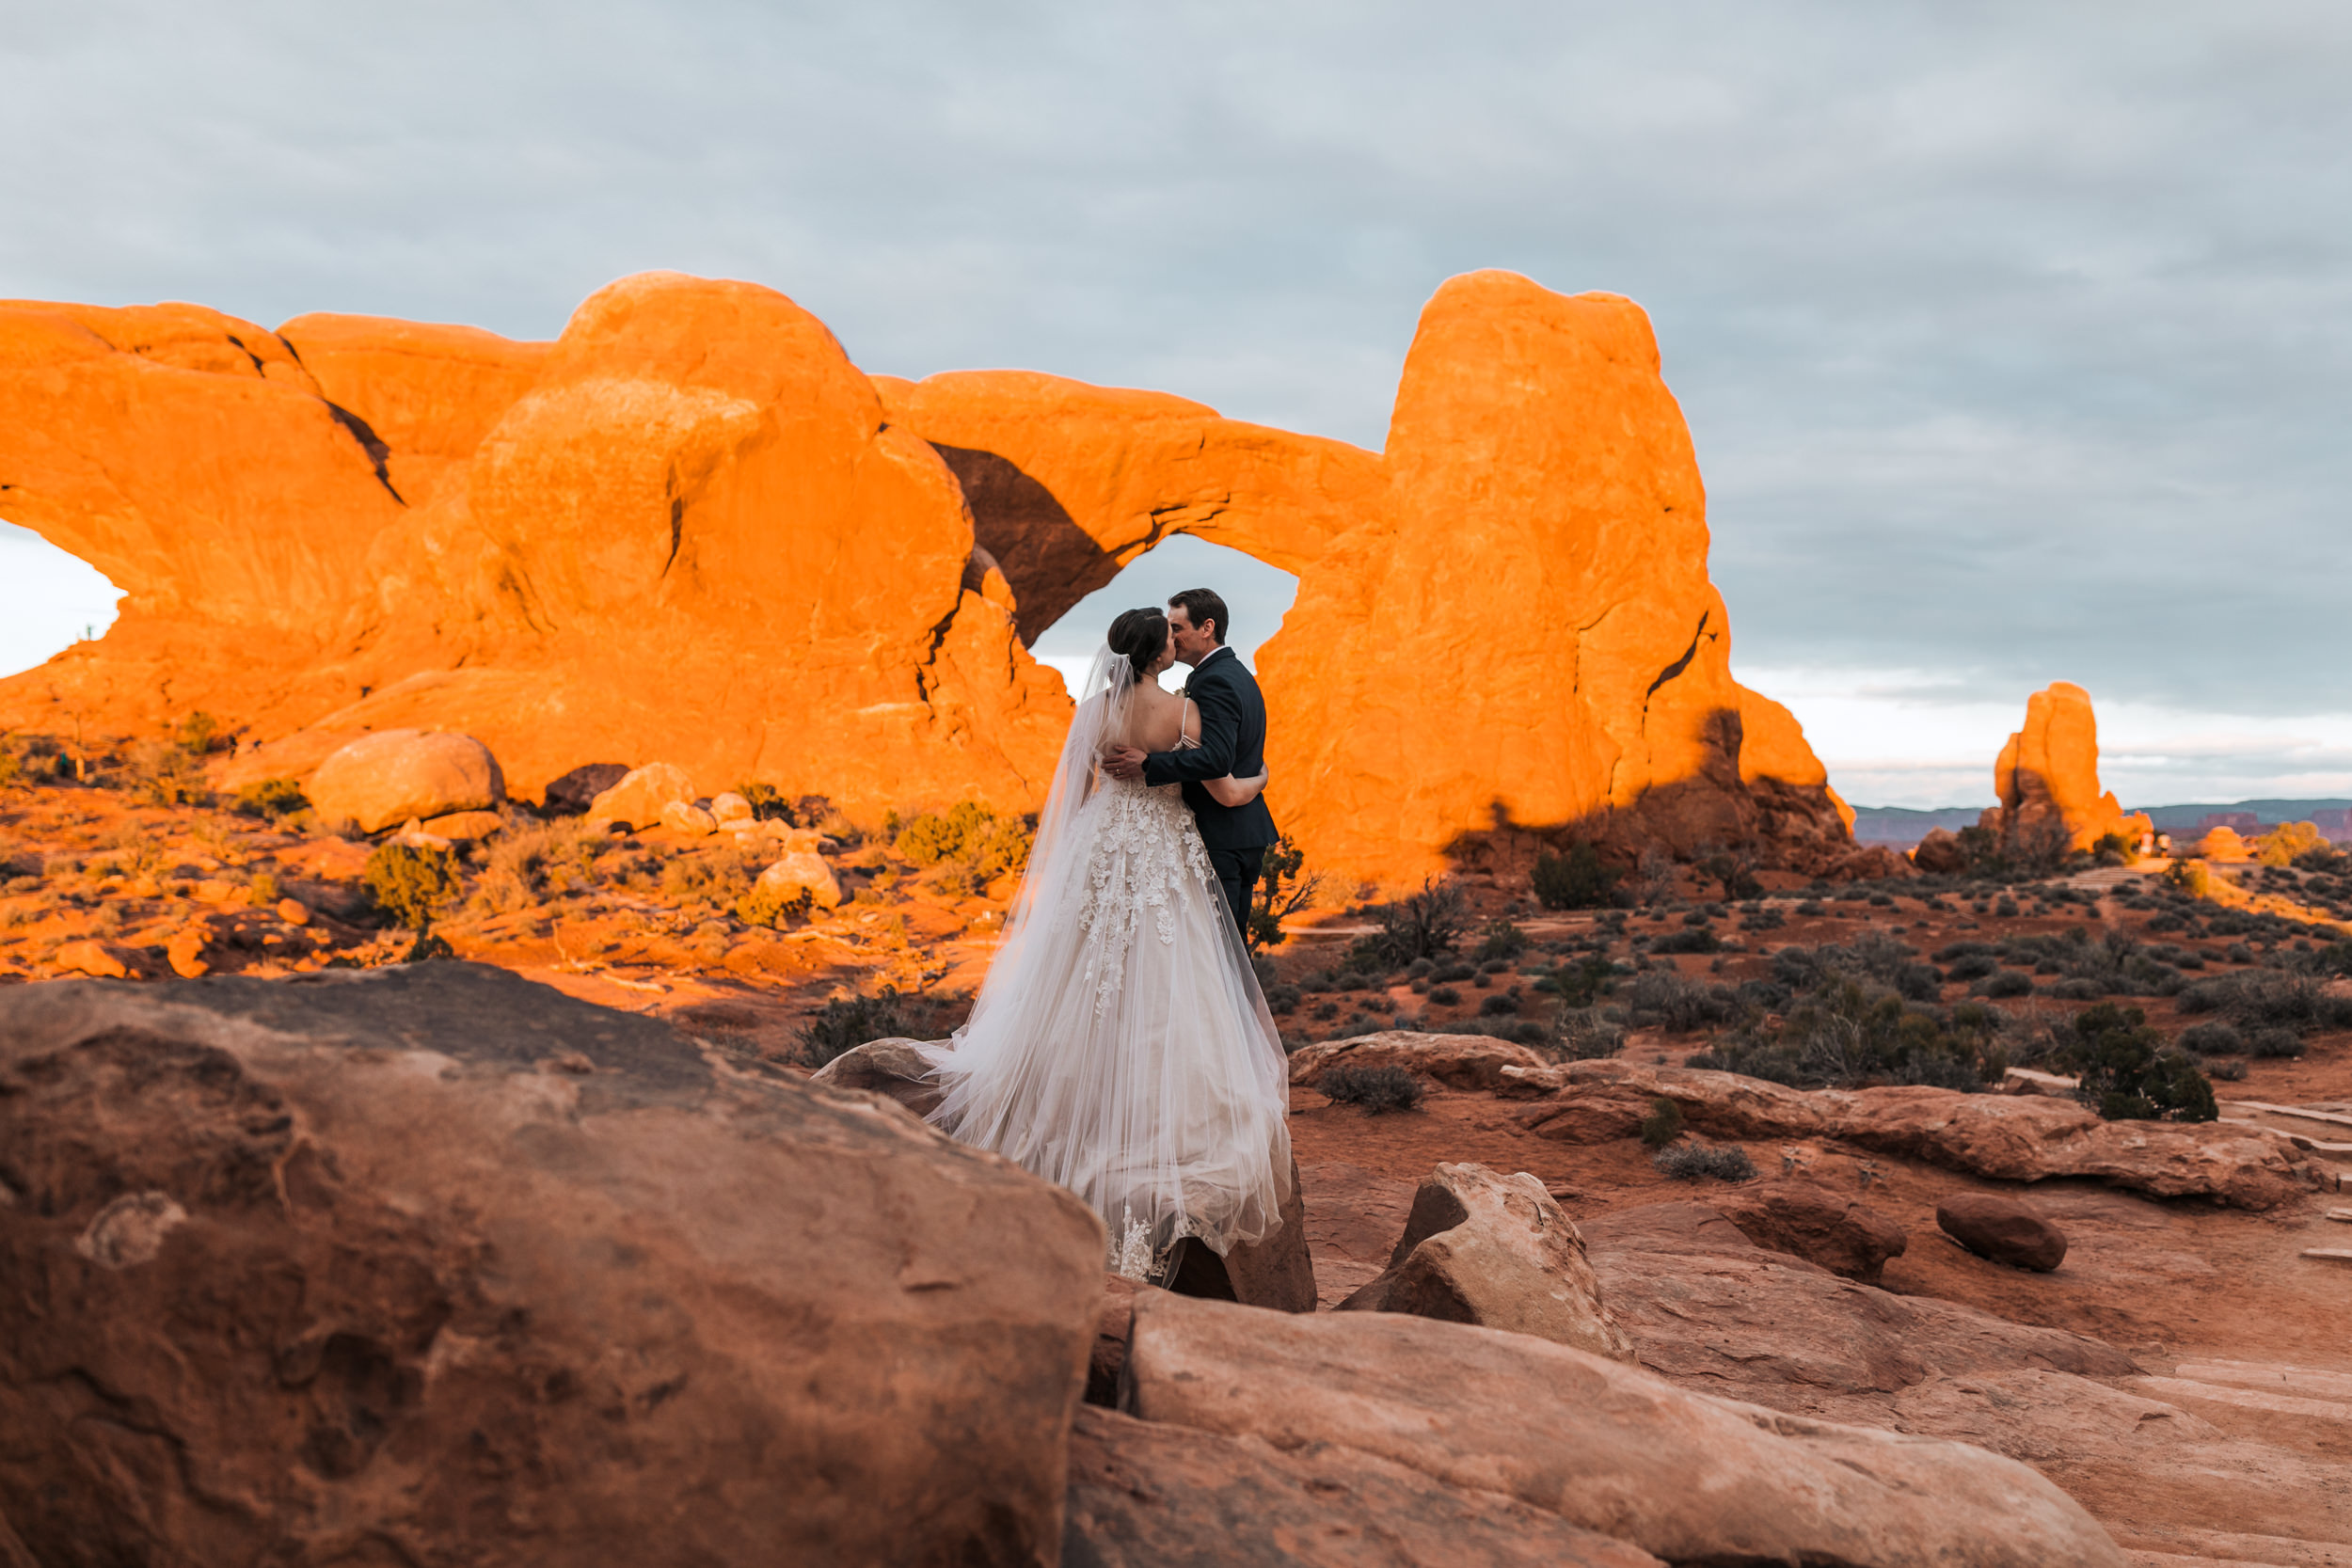 This is one of the best hikes to take at sunset in Arches National Park in Moab, Utah.